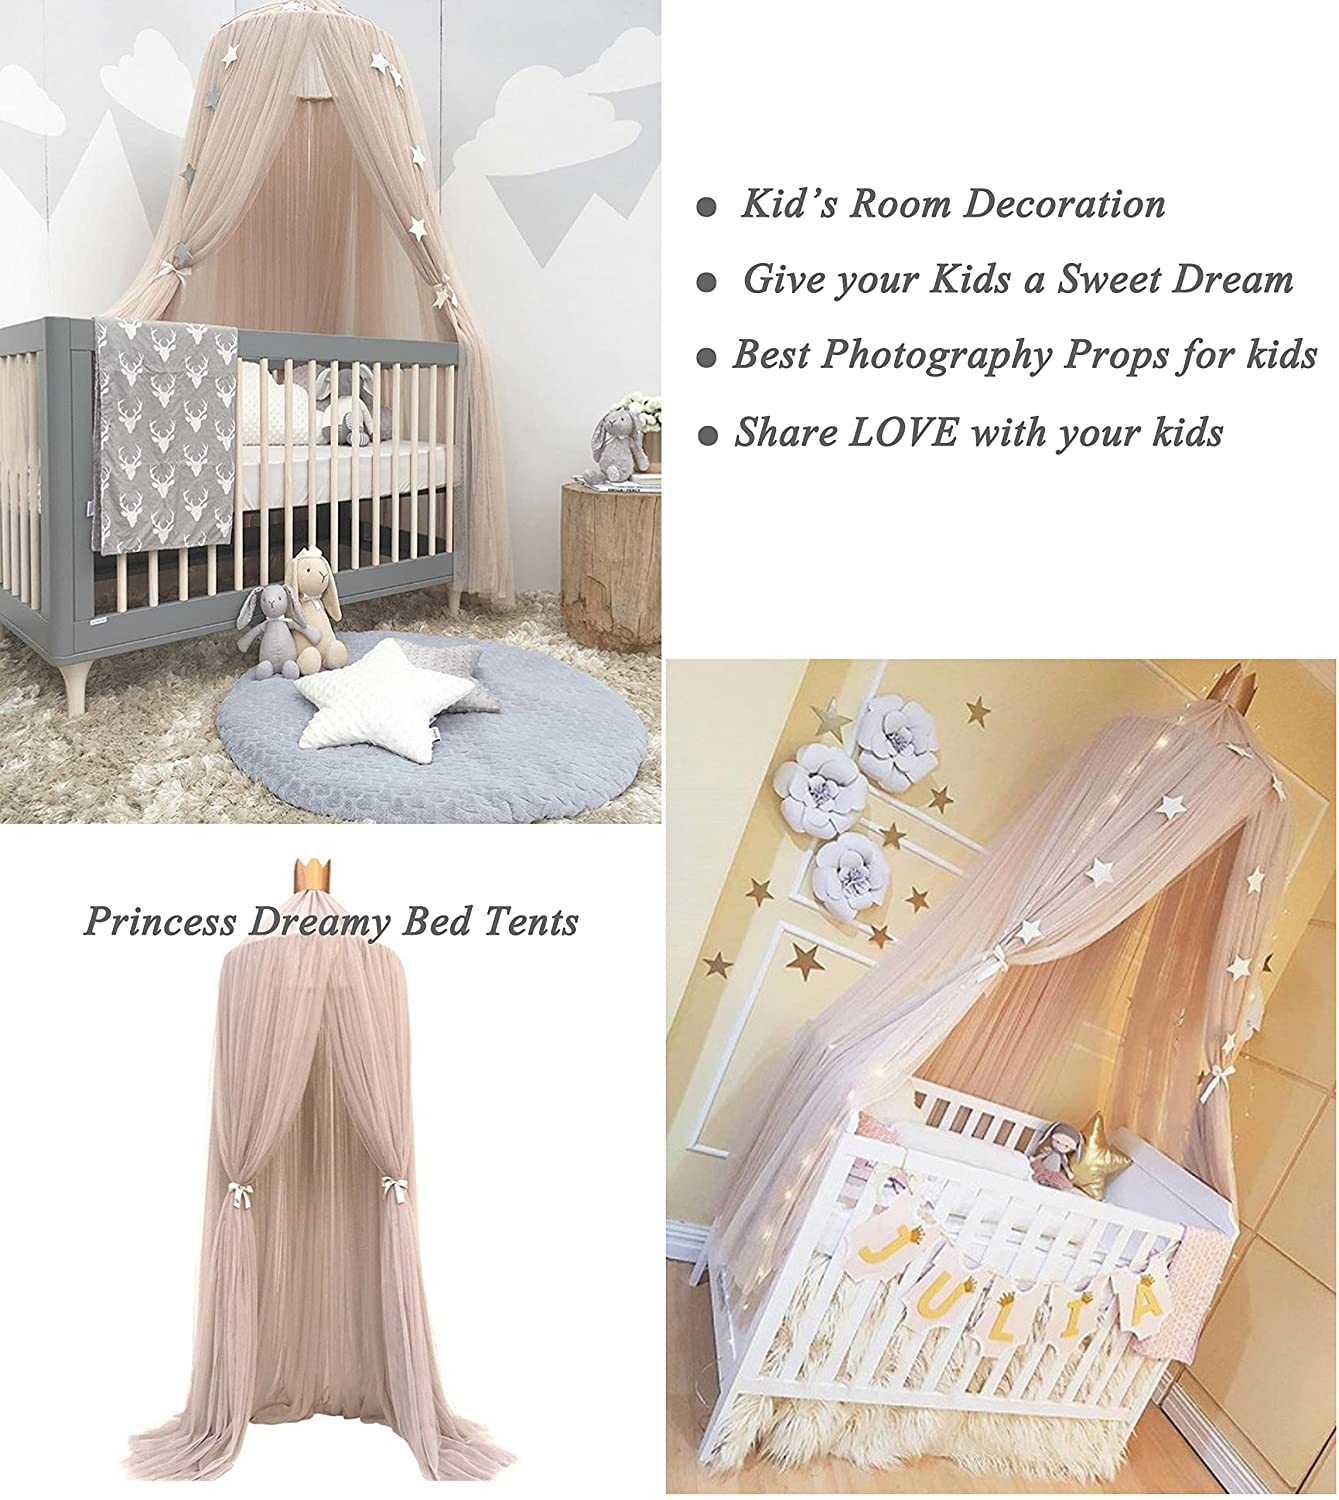 Kids Room Decoration,Photography Props for kids,Full Hanging Kit Insect Protection Repellent Shield,Gift Bag Princess Pink LUCKIEY Mosquito Net Canopy,Princess Dome Bed Canopy,Canopy for Bed